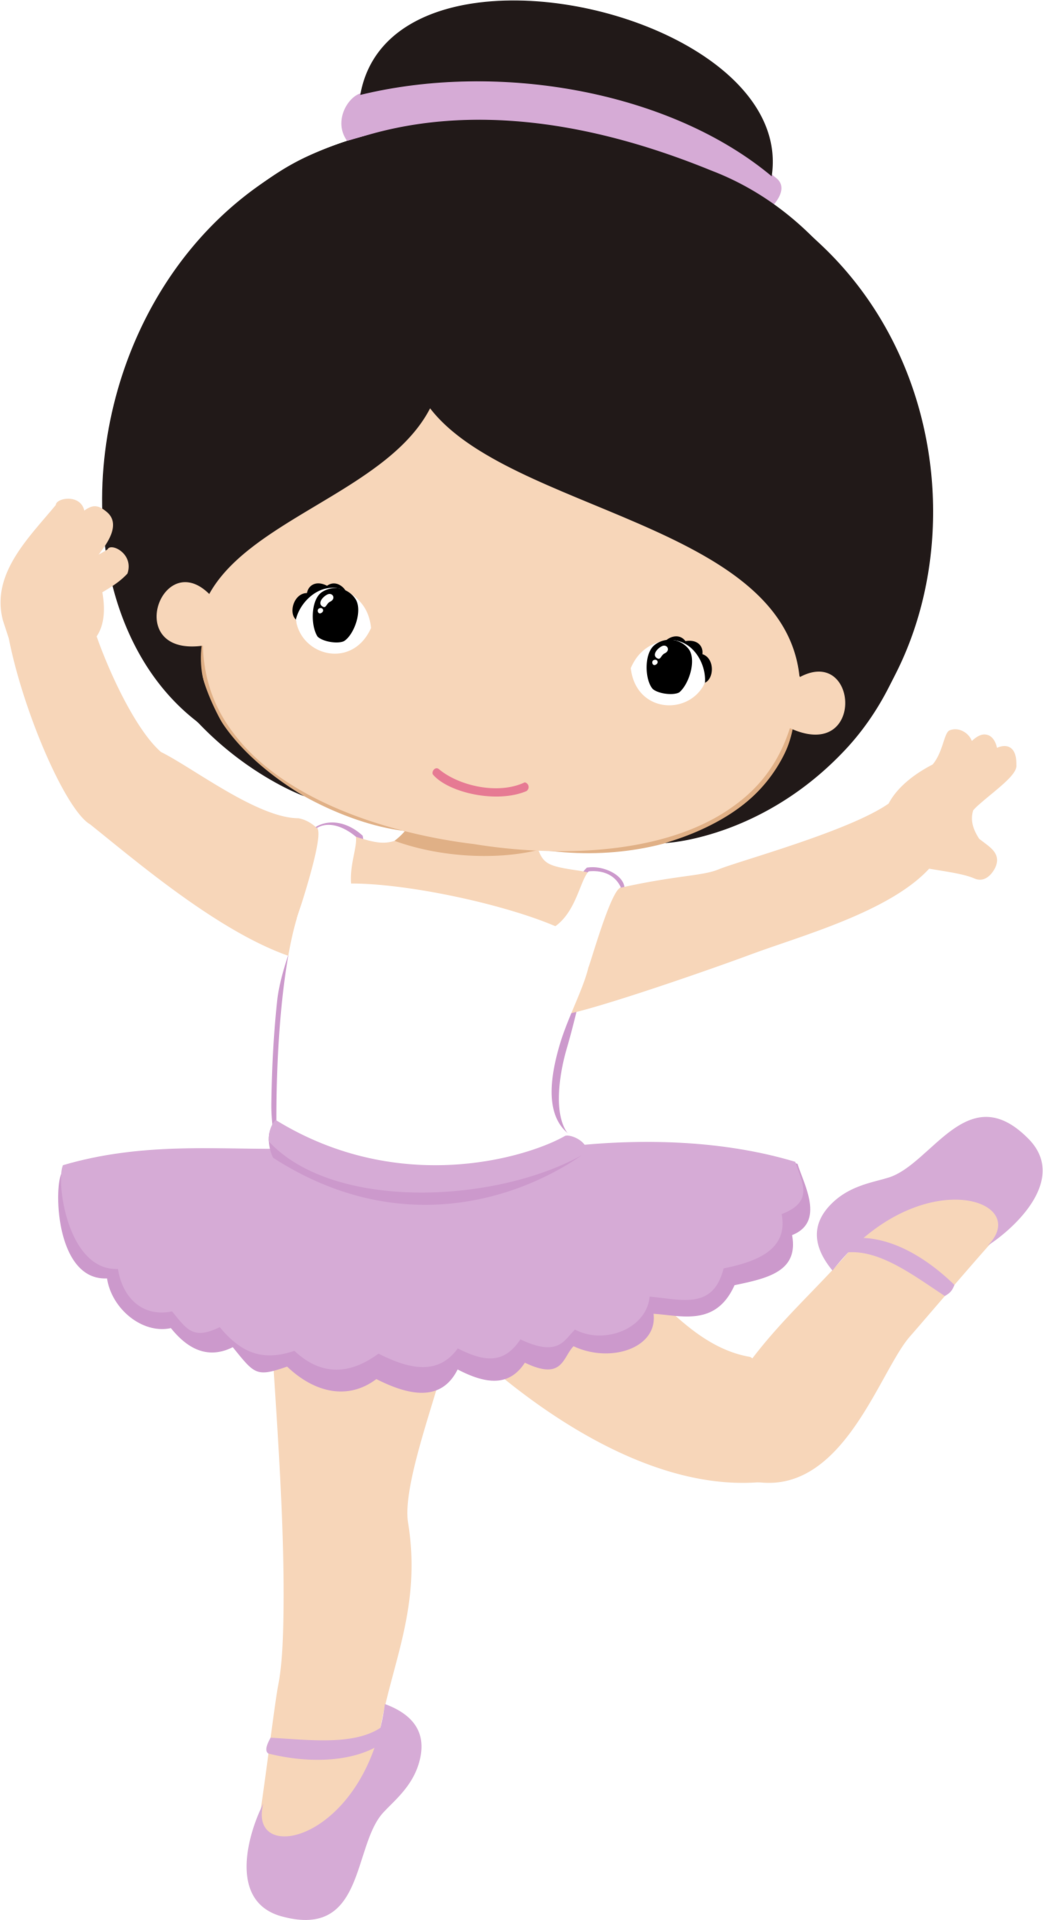 shared exibir todas. Dancer clipart preschool dance